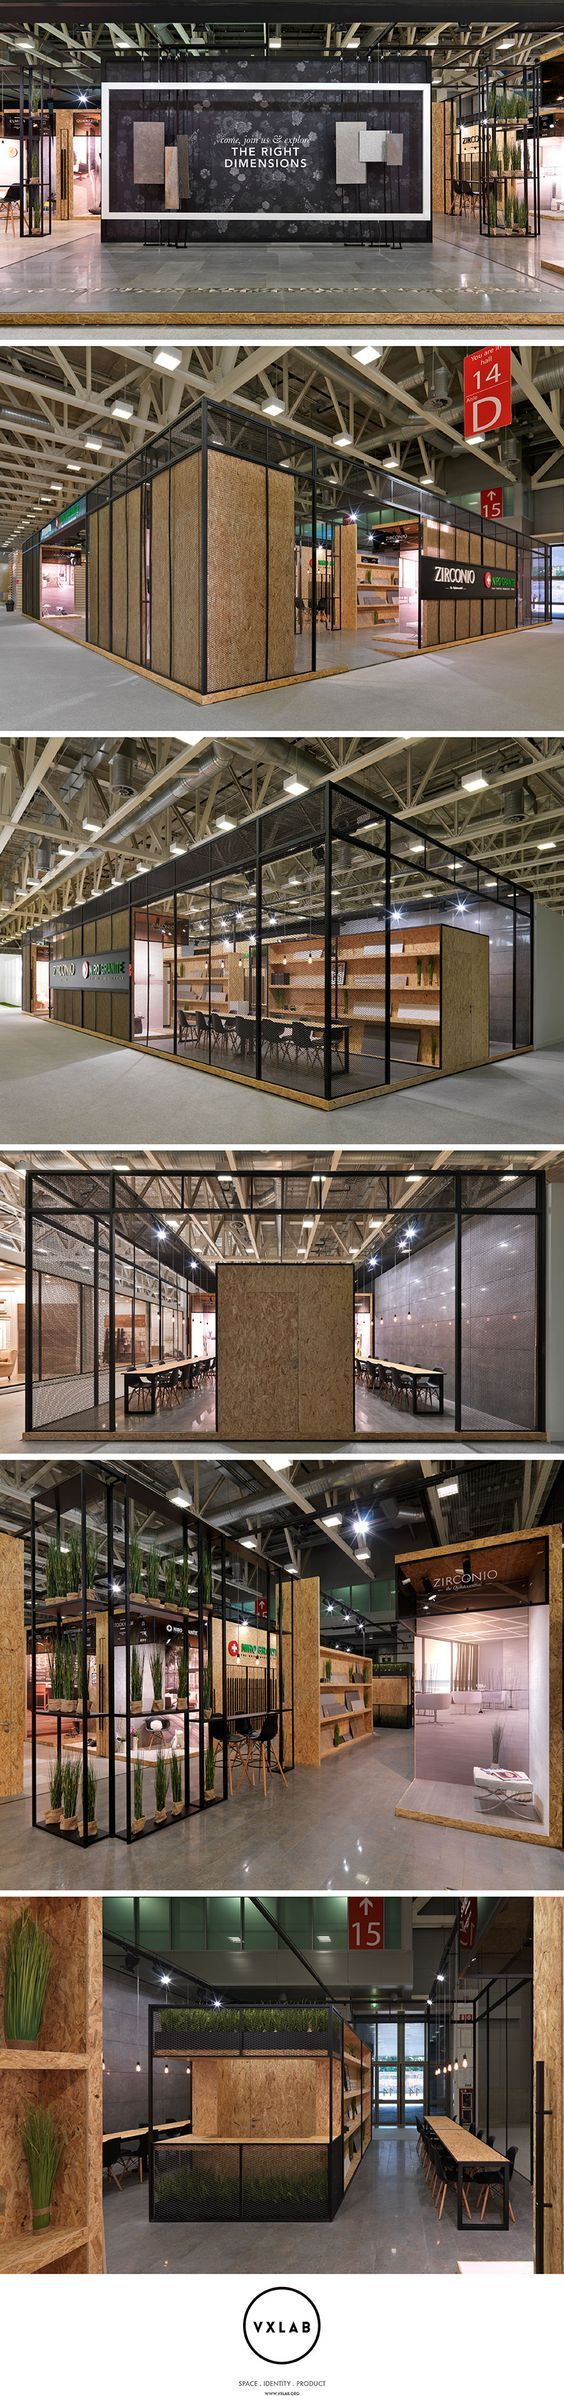 80 best Small Booth Ideas images on Pinterest | Architecture, Business  ideas and Clothes shops